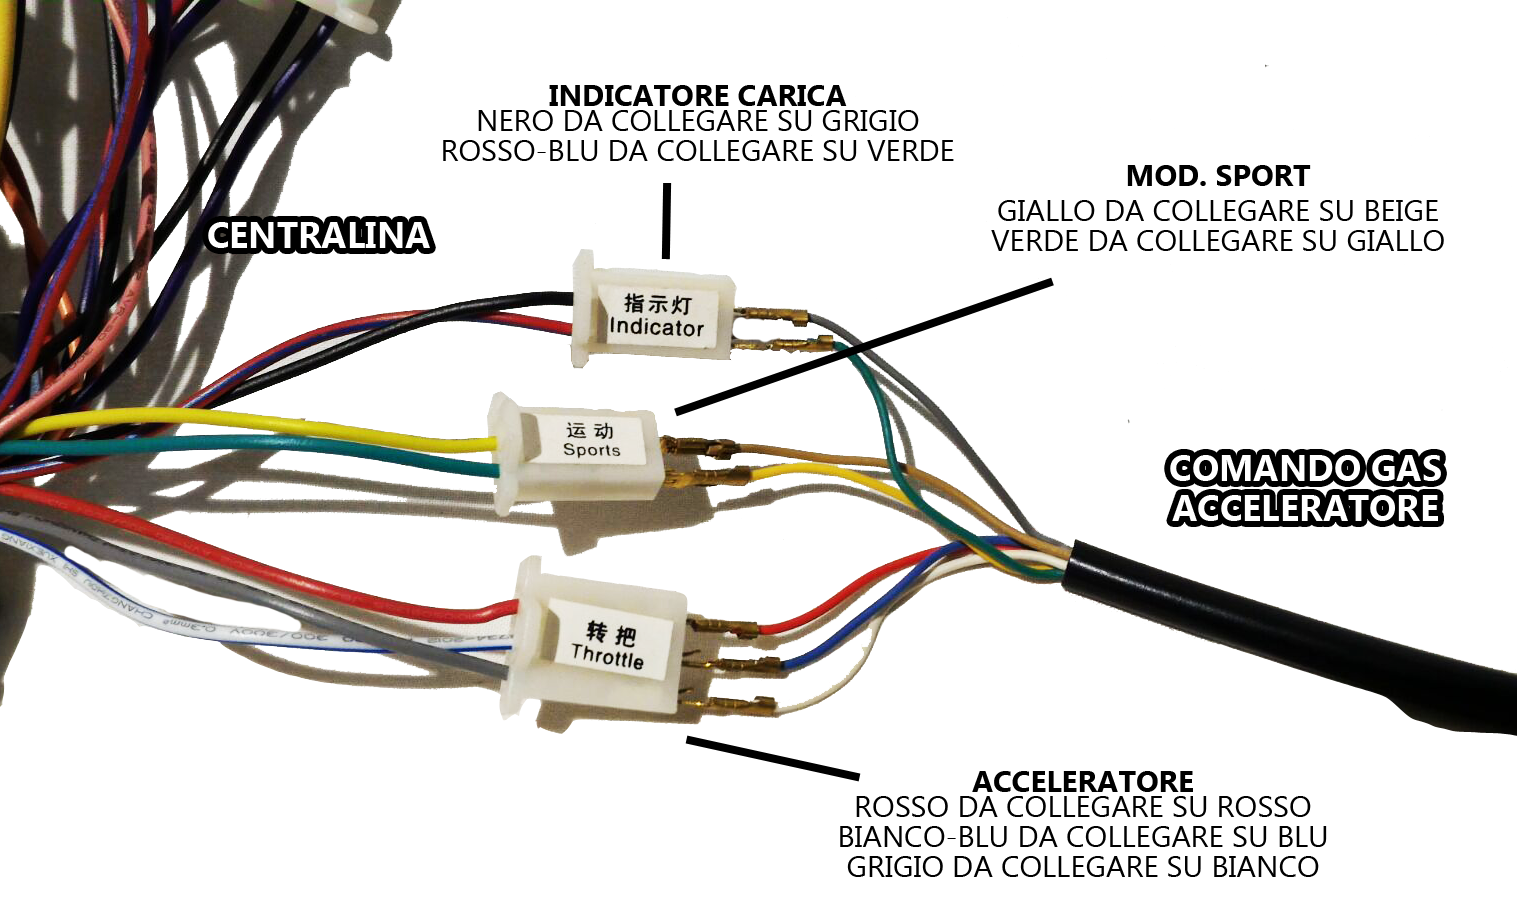 Capobranco Shop Product Mn02020 Trhottle 36volt Electir 36v Battery Indicator Wiring Diagram Connection Between Control Units And Accelerator 48v 1600w Brushless 60v 2000w